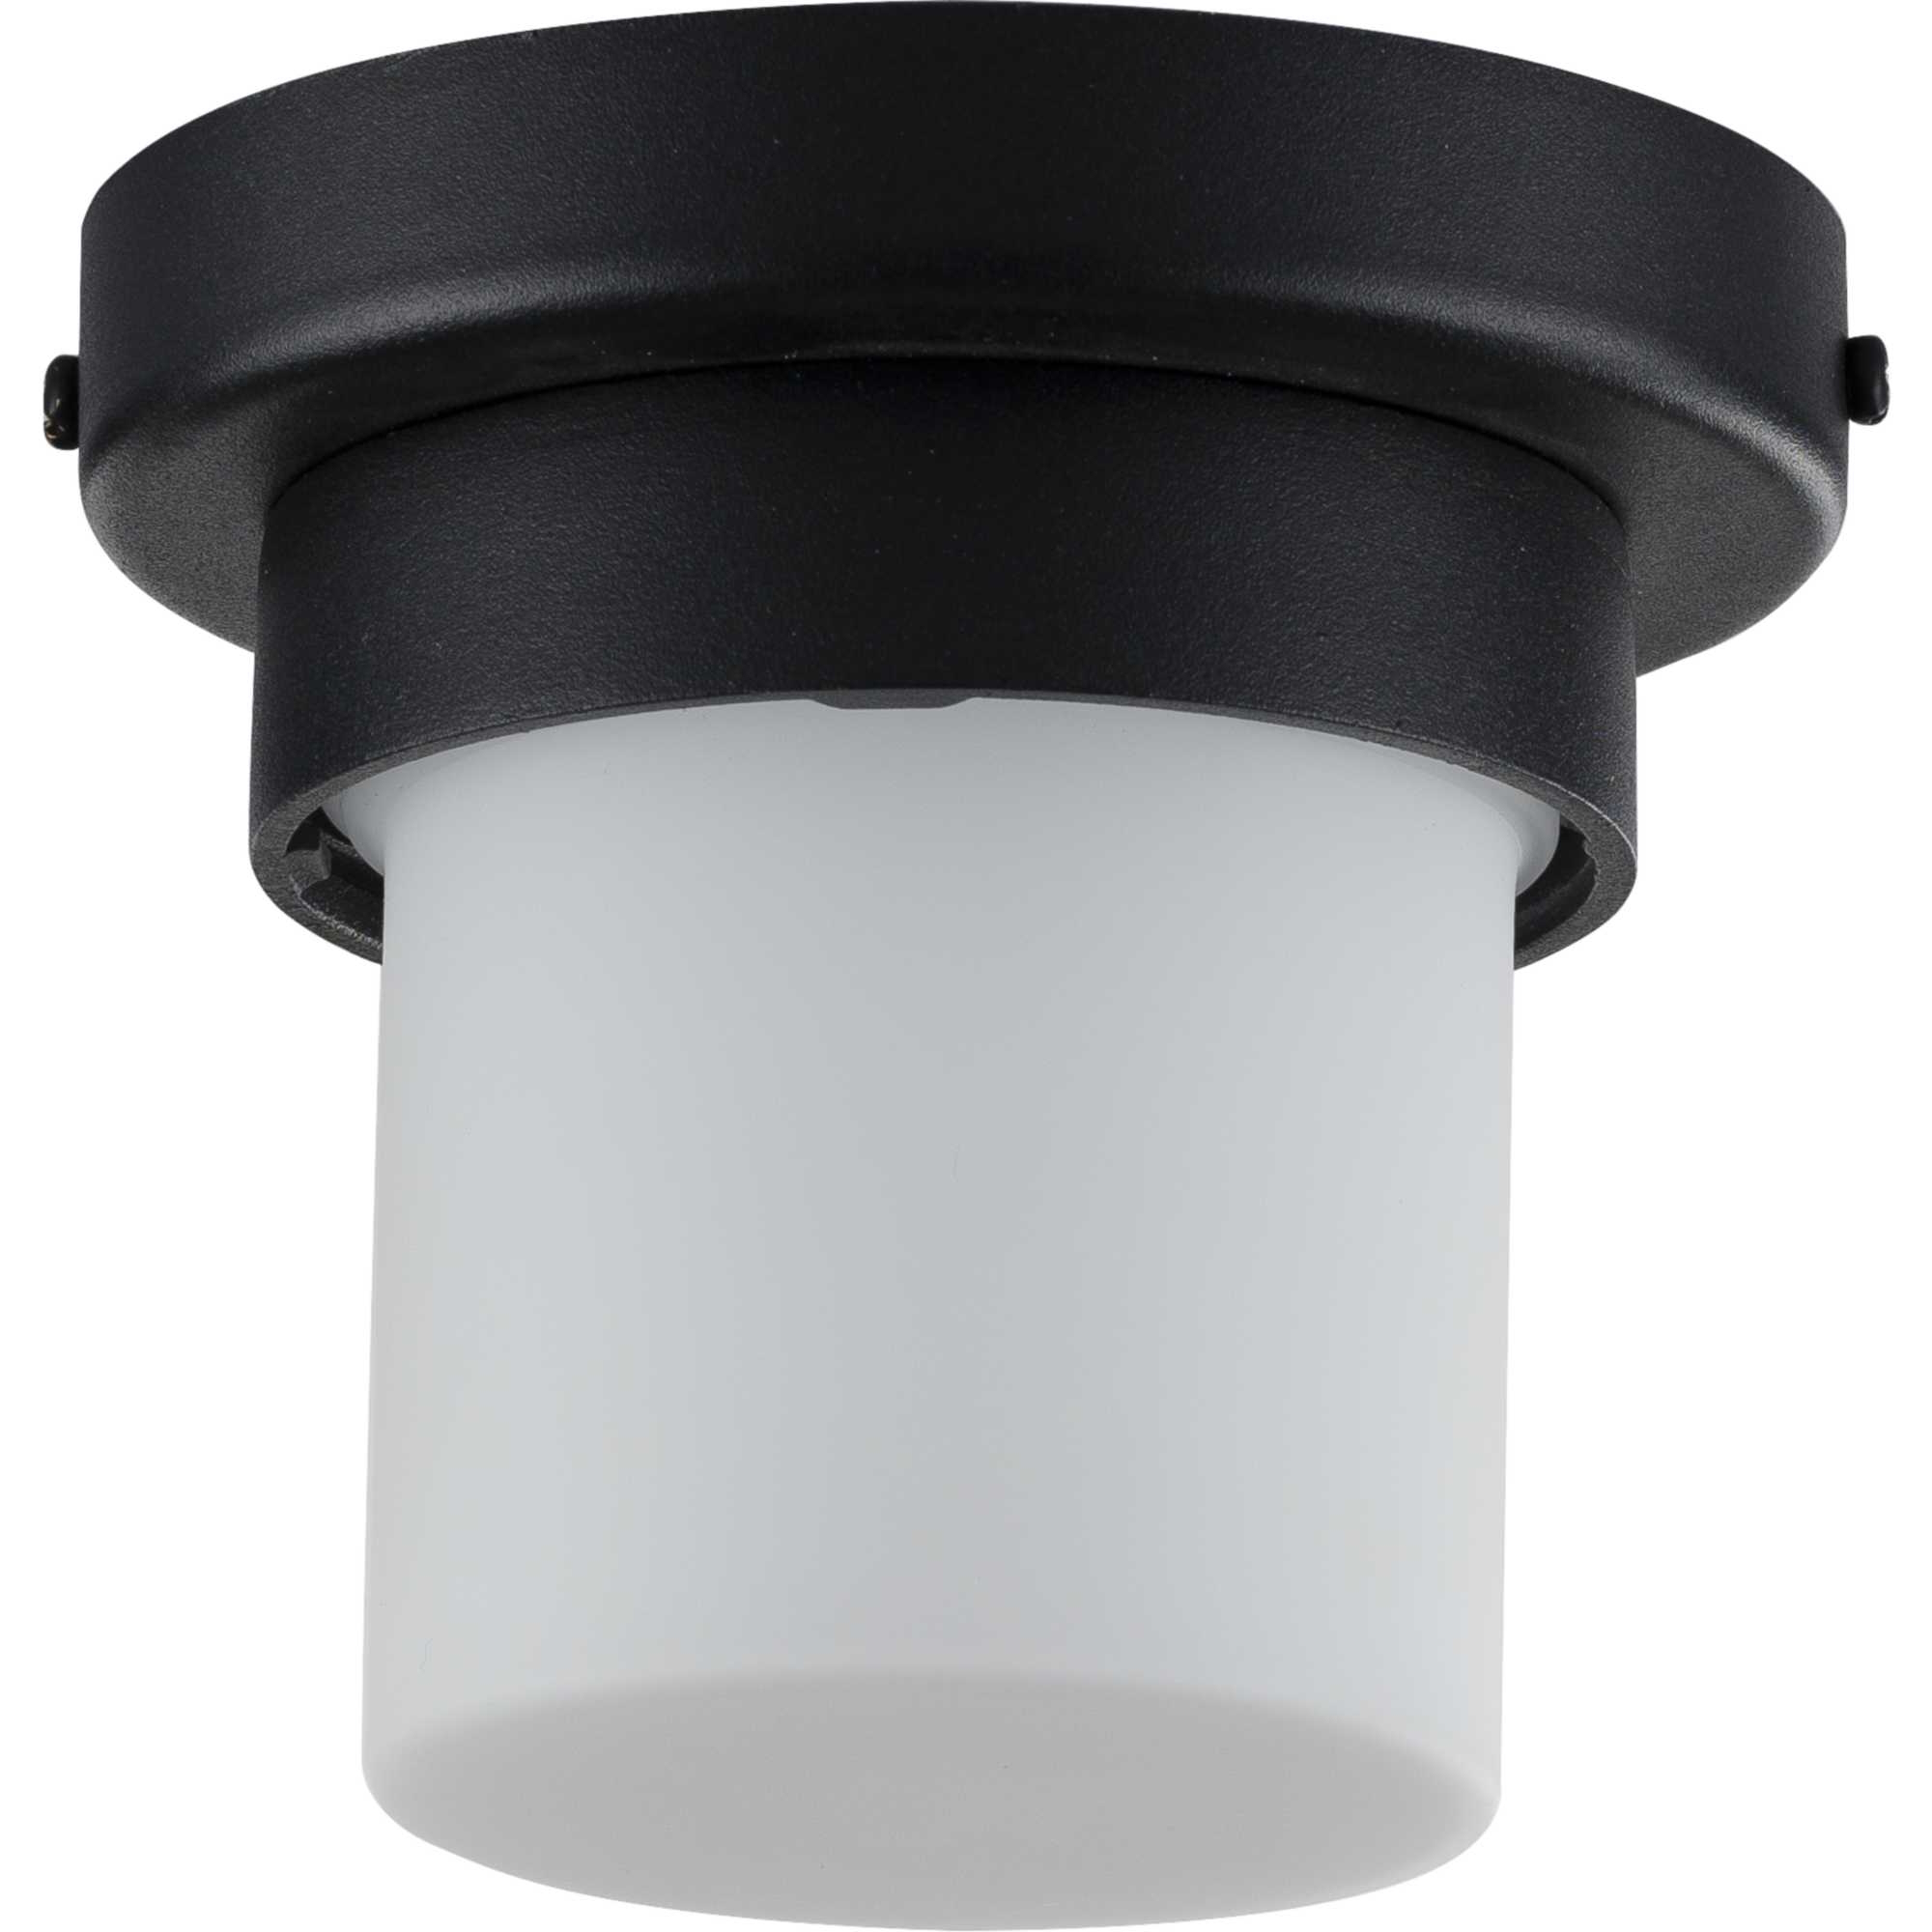 """Widely Used Whisnant Black Integrated Led Frosted Glass Outdoor Flush Mount In Progress Lighting P550071 30 5""""w Led Outdoor Flush Mount (View 8 of 20)"""